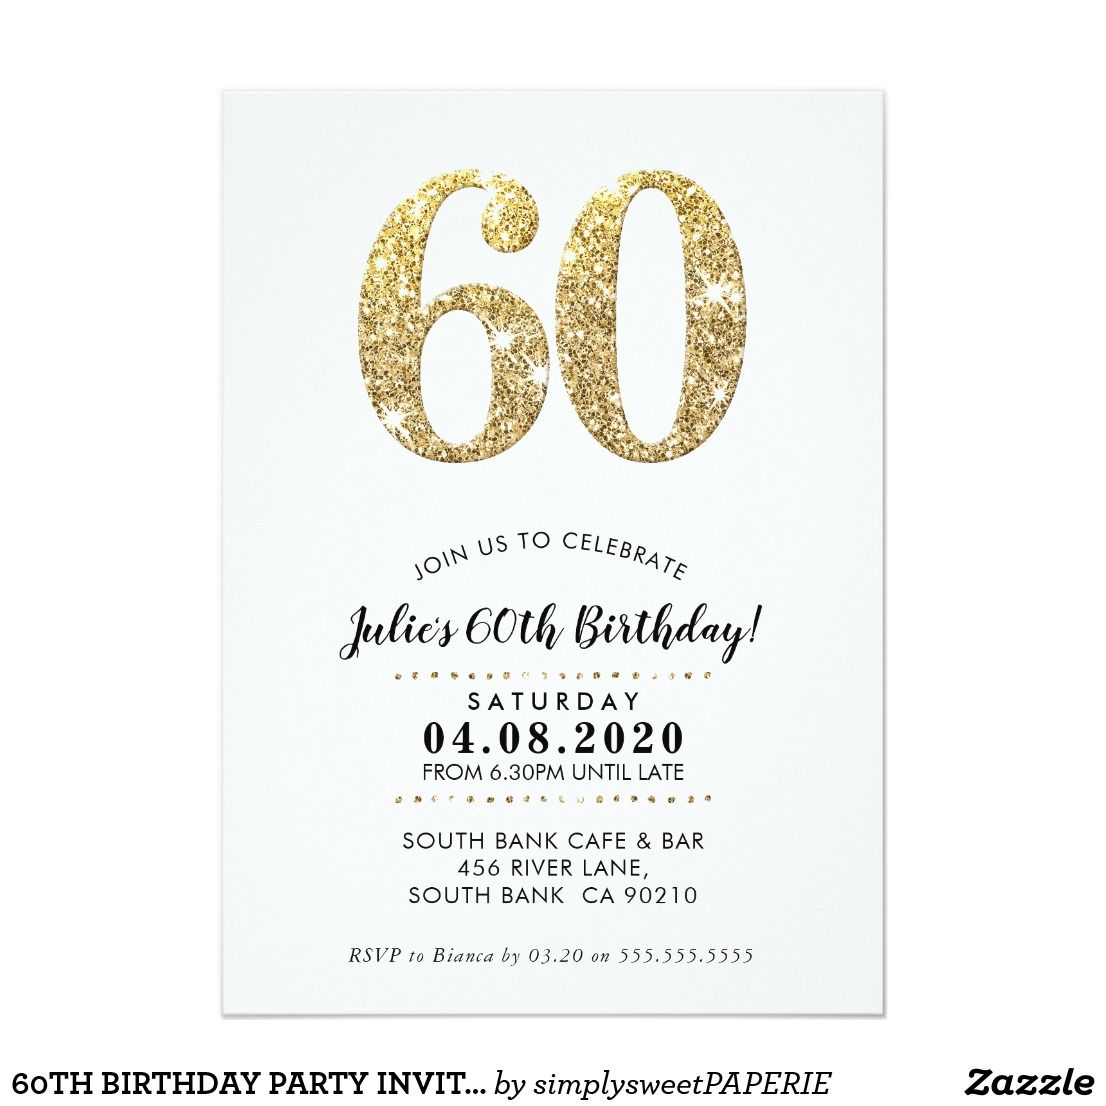 60TH BIRTHDAY PARTY INVITE modern gold glitter | Pinterest